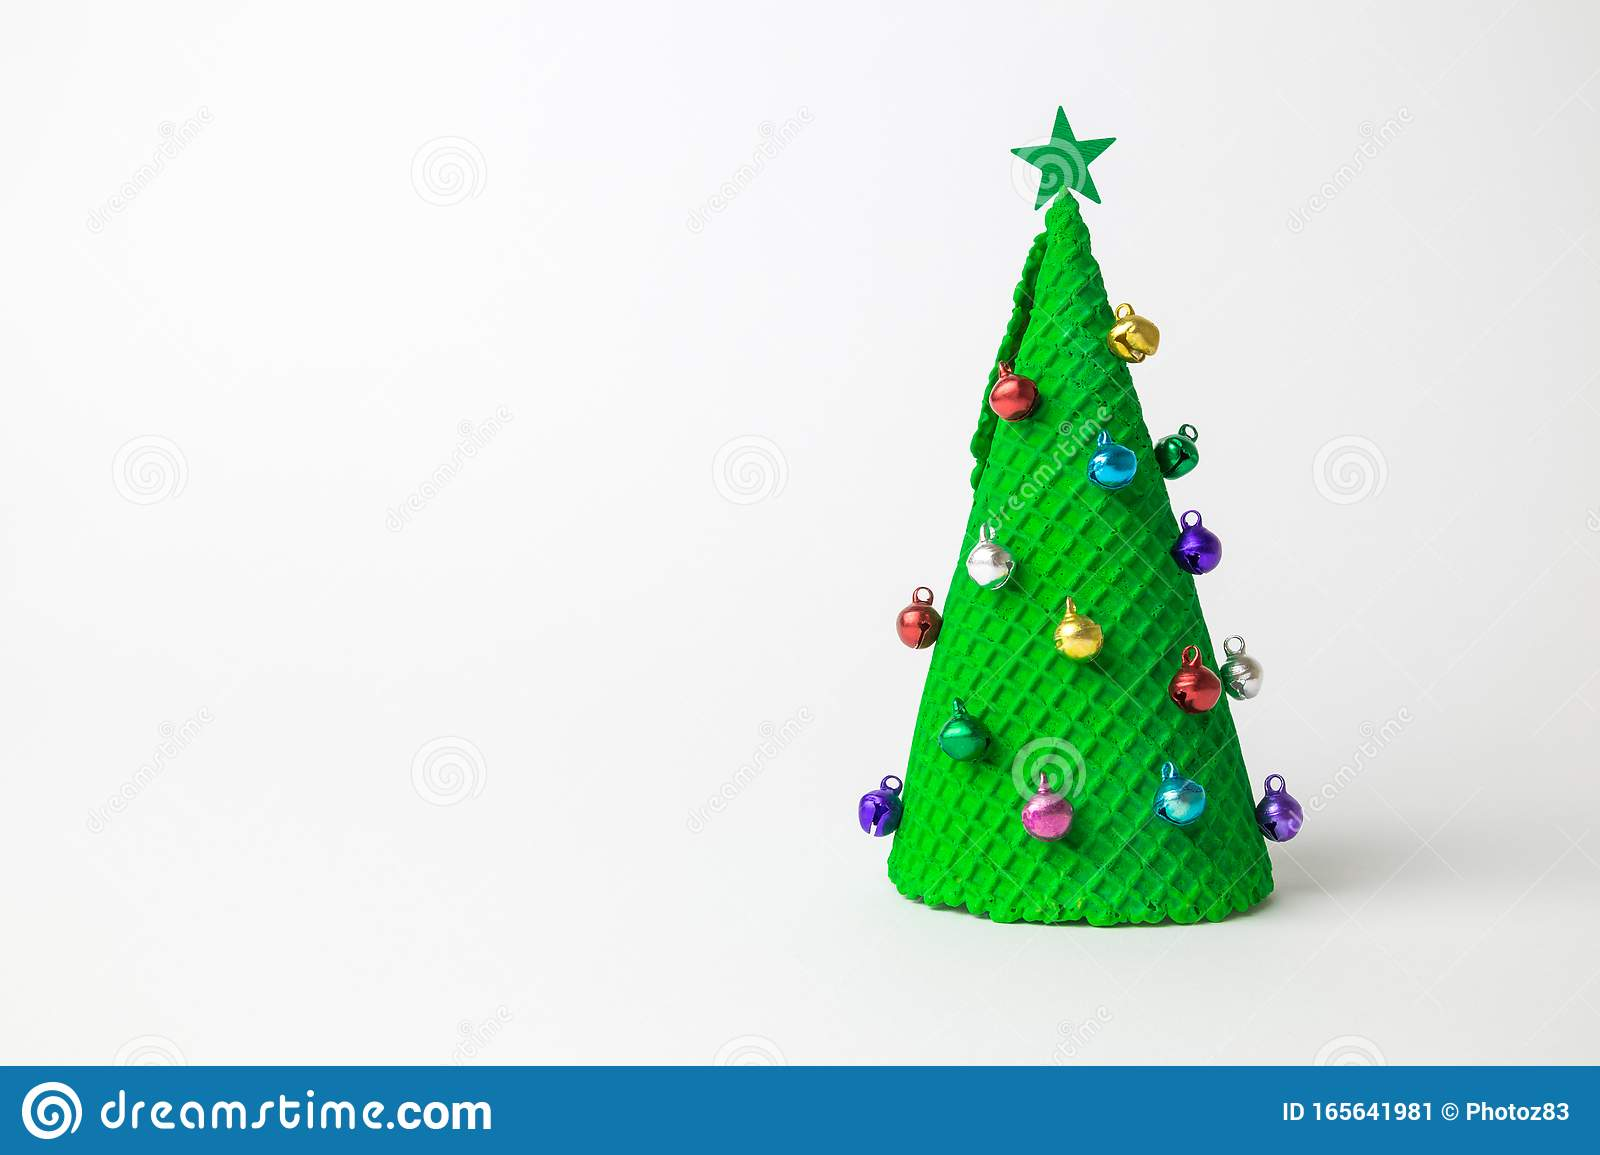 Green Ice Cream Cone In Form Of Christmas Tree Decorated With Colorful Baubles And Star On White Background Minimal Creative Stock Image Image Of Bright Baubles 165641981